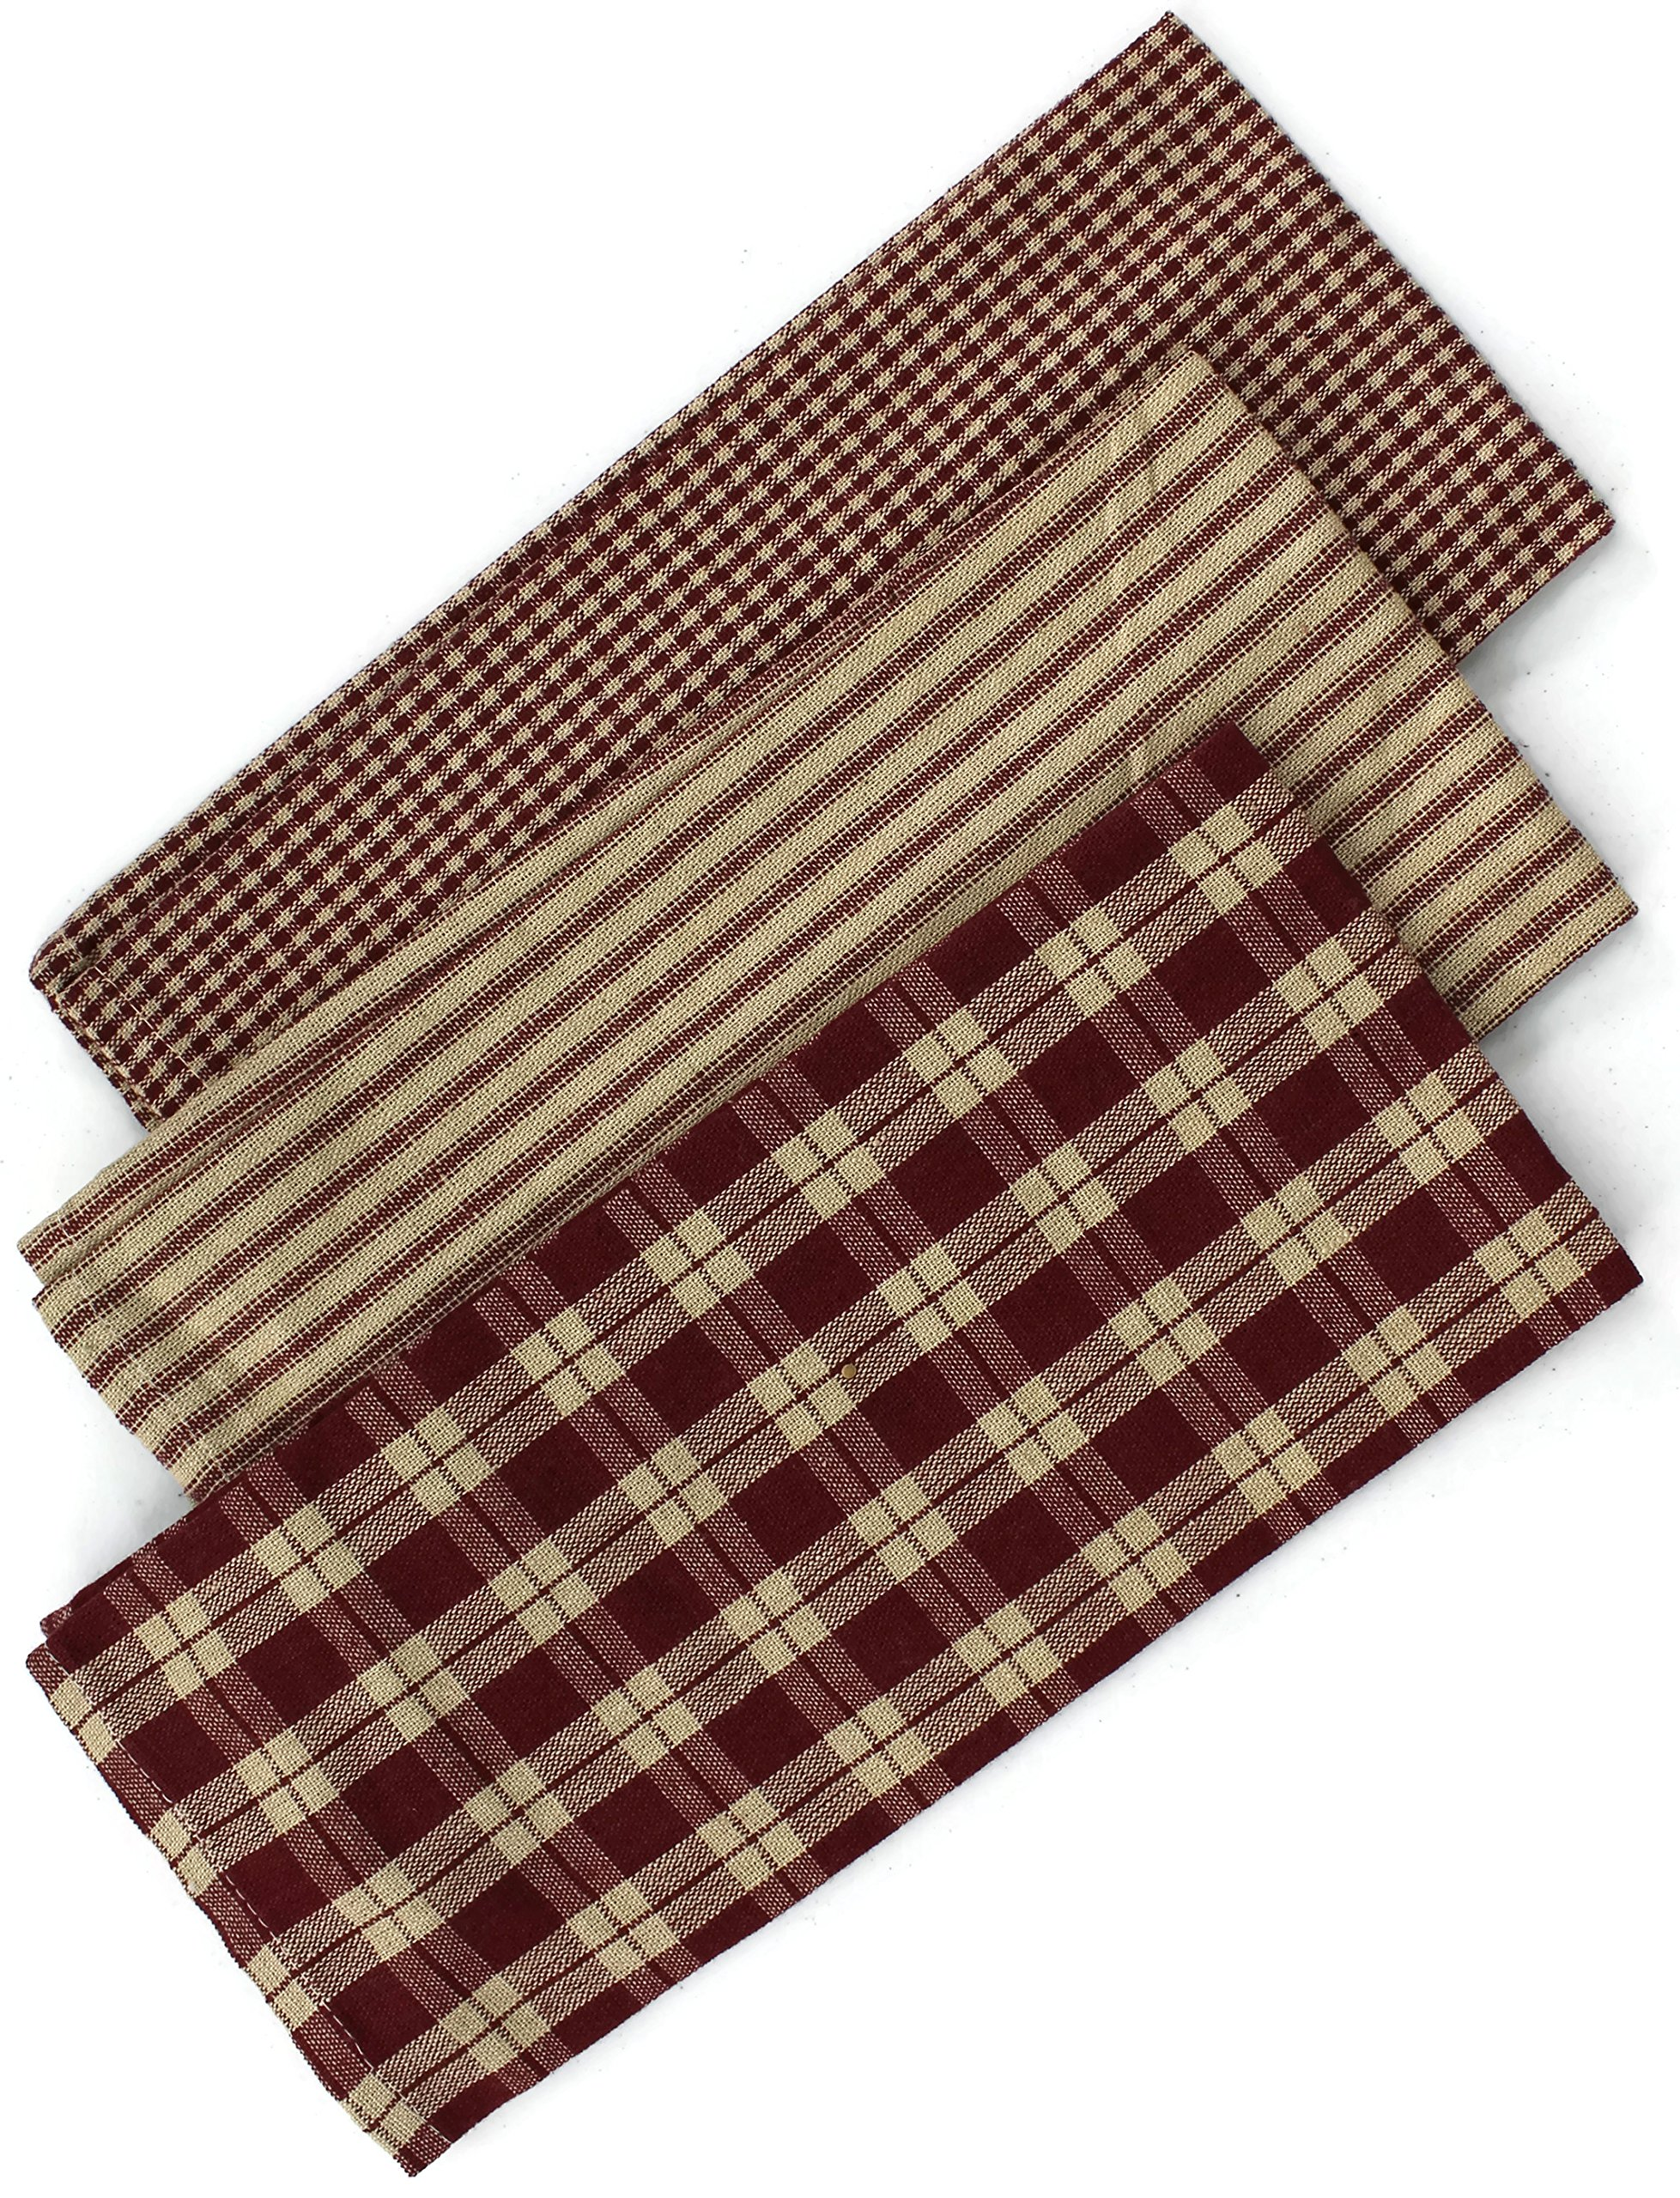 Rustic Covenant Woven Cotton Farmhouse Kitchen Tea Towels, 22 inches x 13 inches, Set of 3, Burgundy Red/Natural Tan